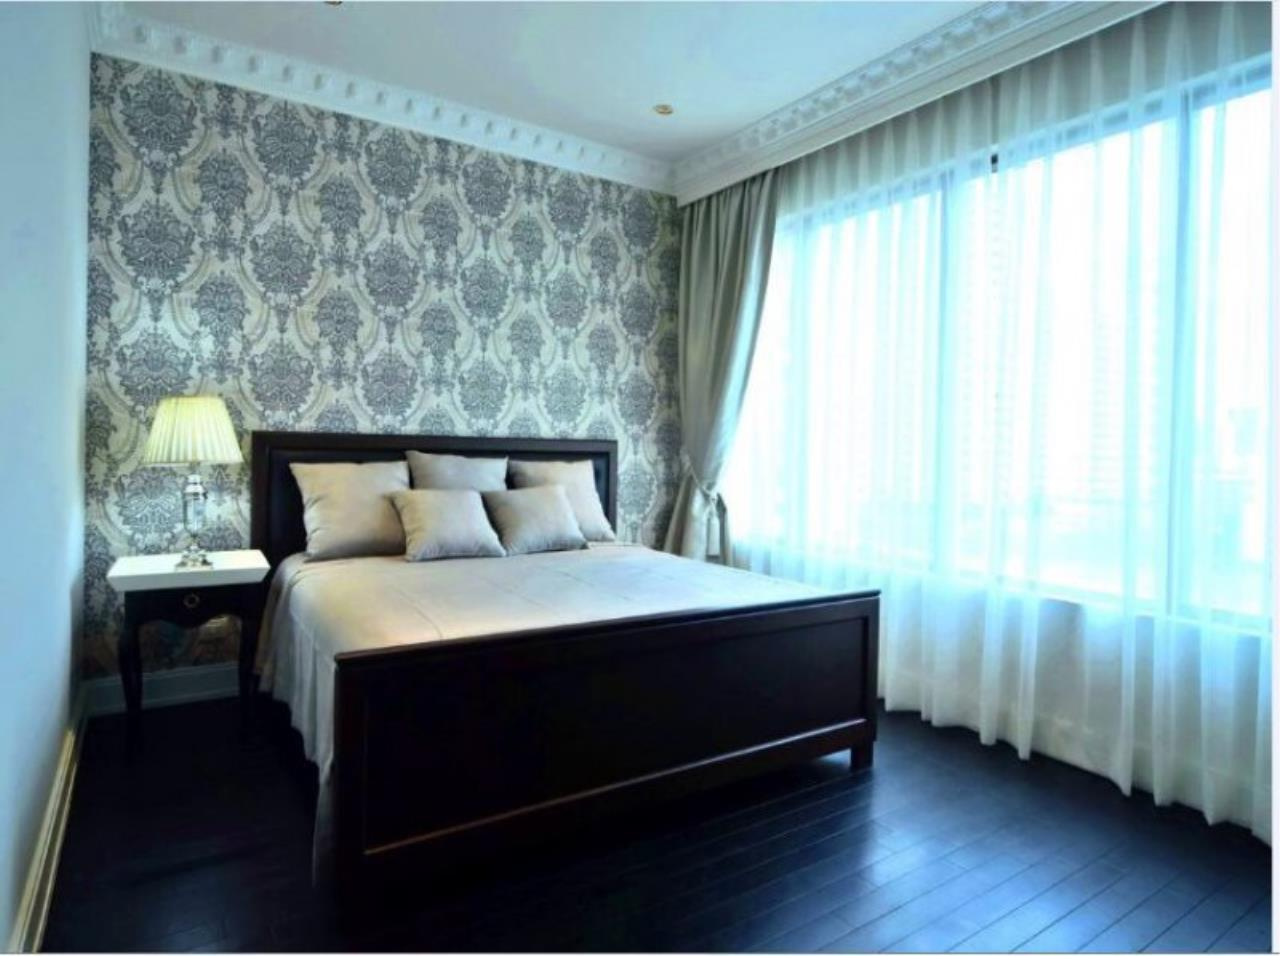 Piri Property Agency's Luxury 2 Bedrooms in the Emporio Place Condo for rent on high floor 4